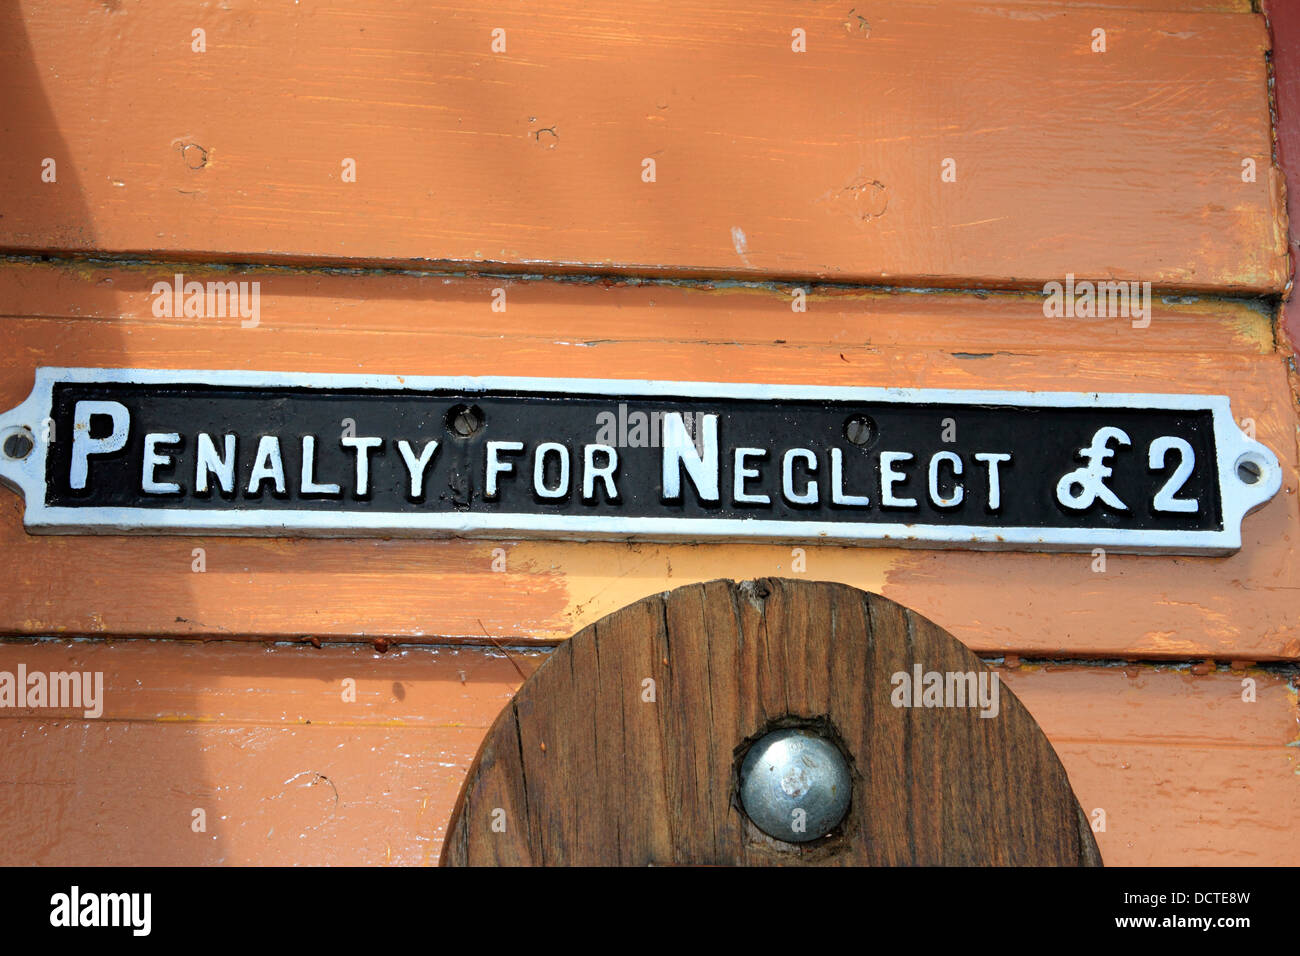 Penalty for neglect old railway sign - Stock Image